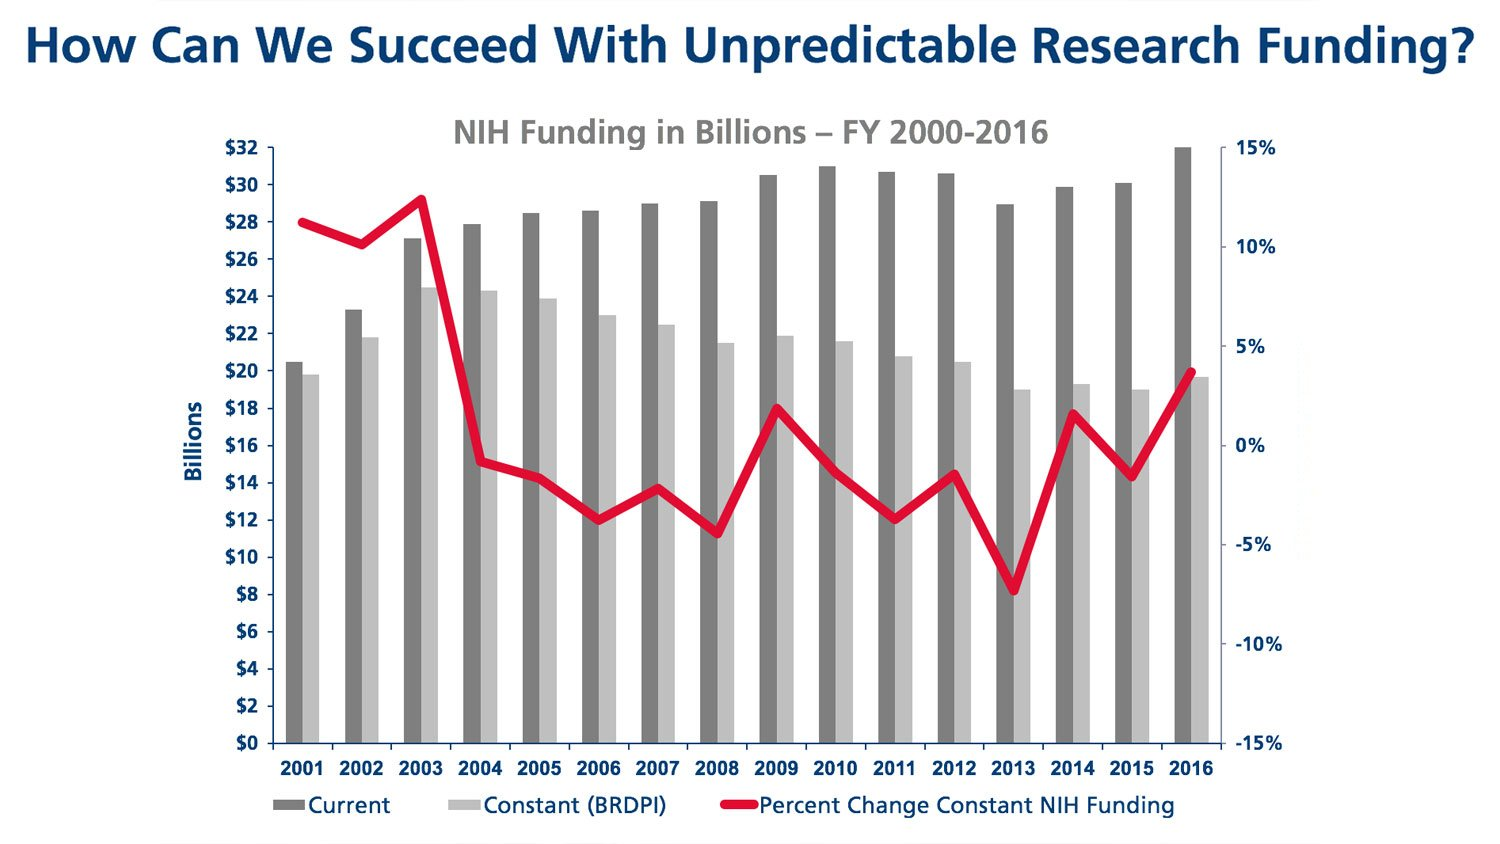 The red line represents the percent change in constant NIH funding. Although the NIH budget appears to be increasing, it is shrinking in purchasing power.